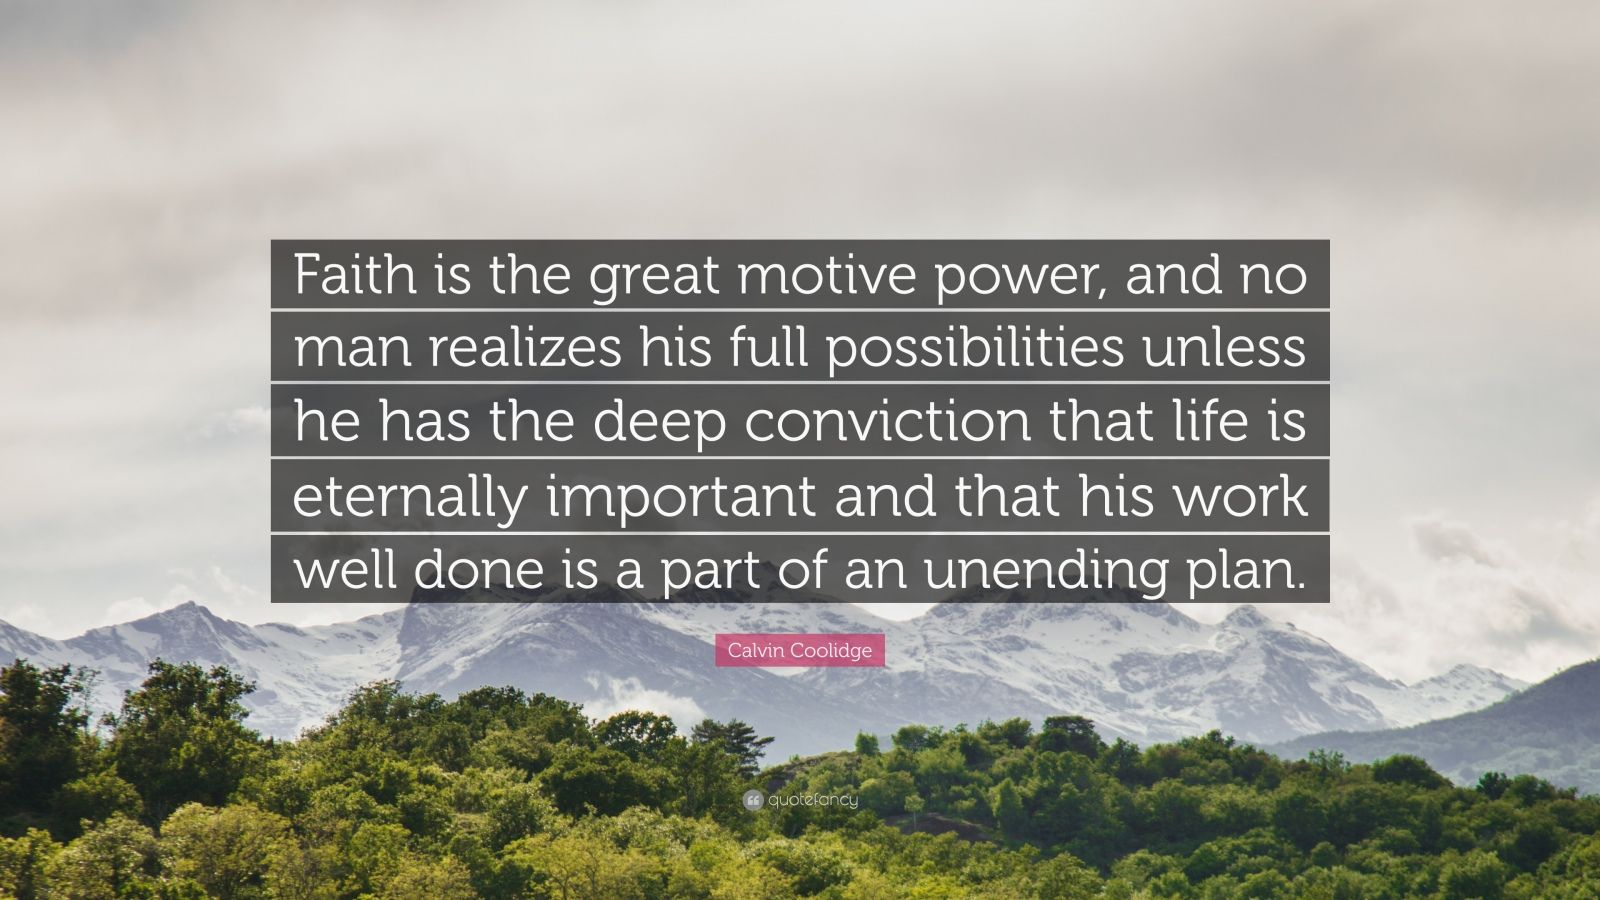 """Calvin Coolidge Quote: """"Faith is the great motive power, and no man realizes his full possibilities unless he has the deep conviction that life is eternally important and that his work well done is a part of an unending plan."""""""